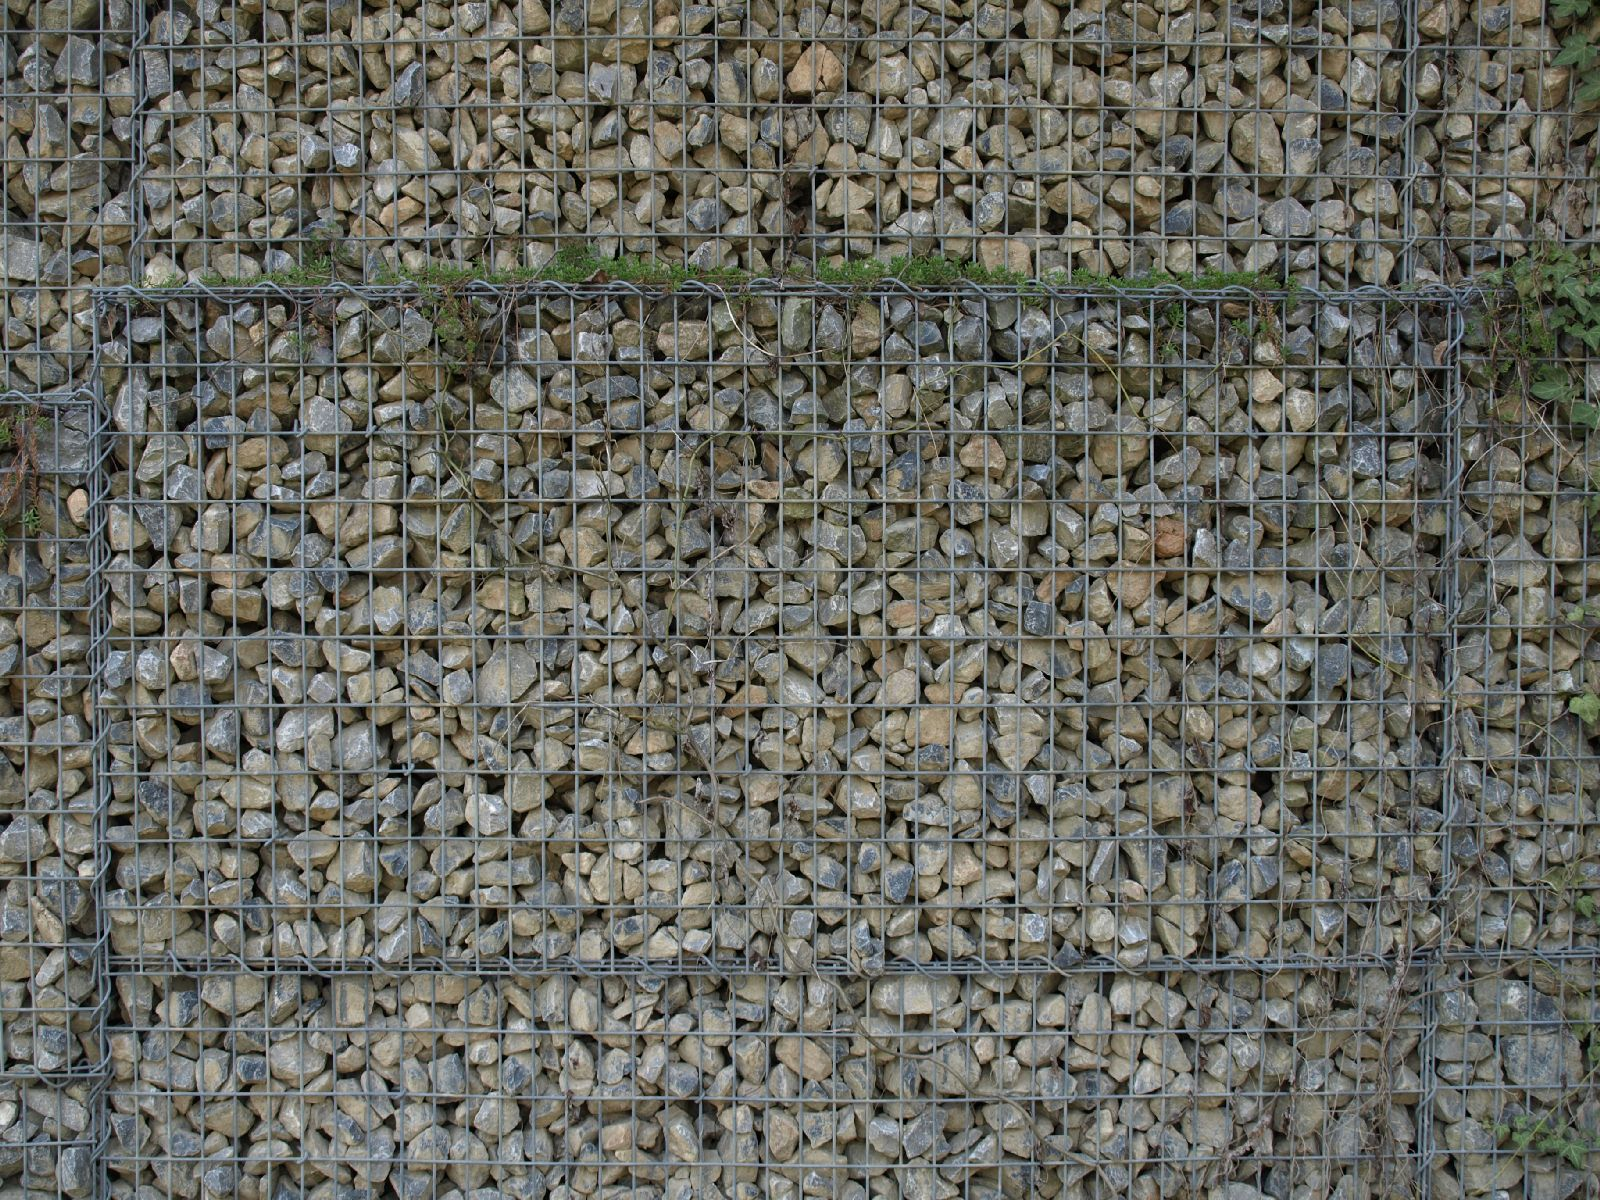 Stone_Texture_A_P4221649